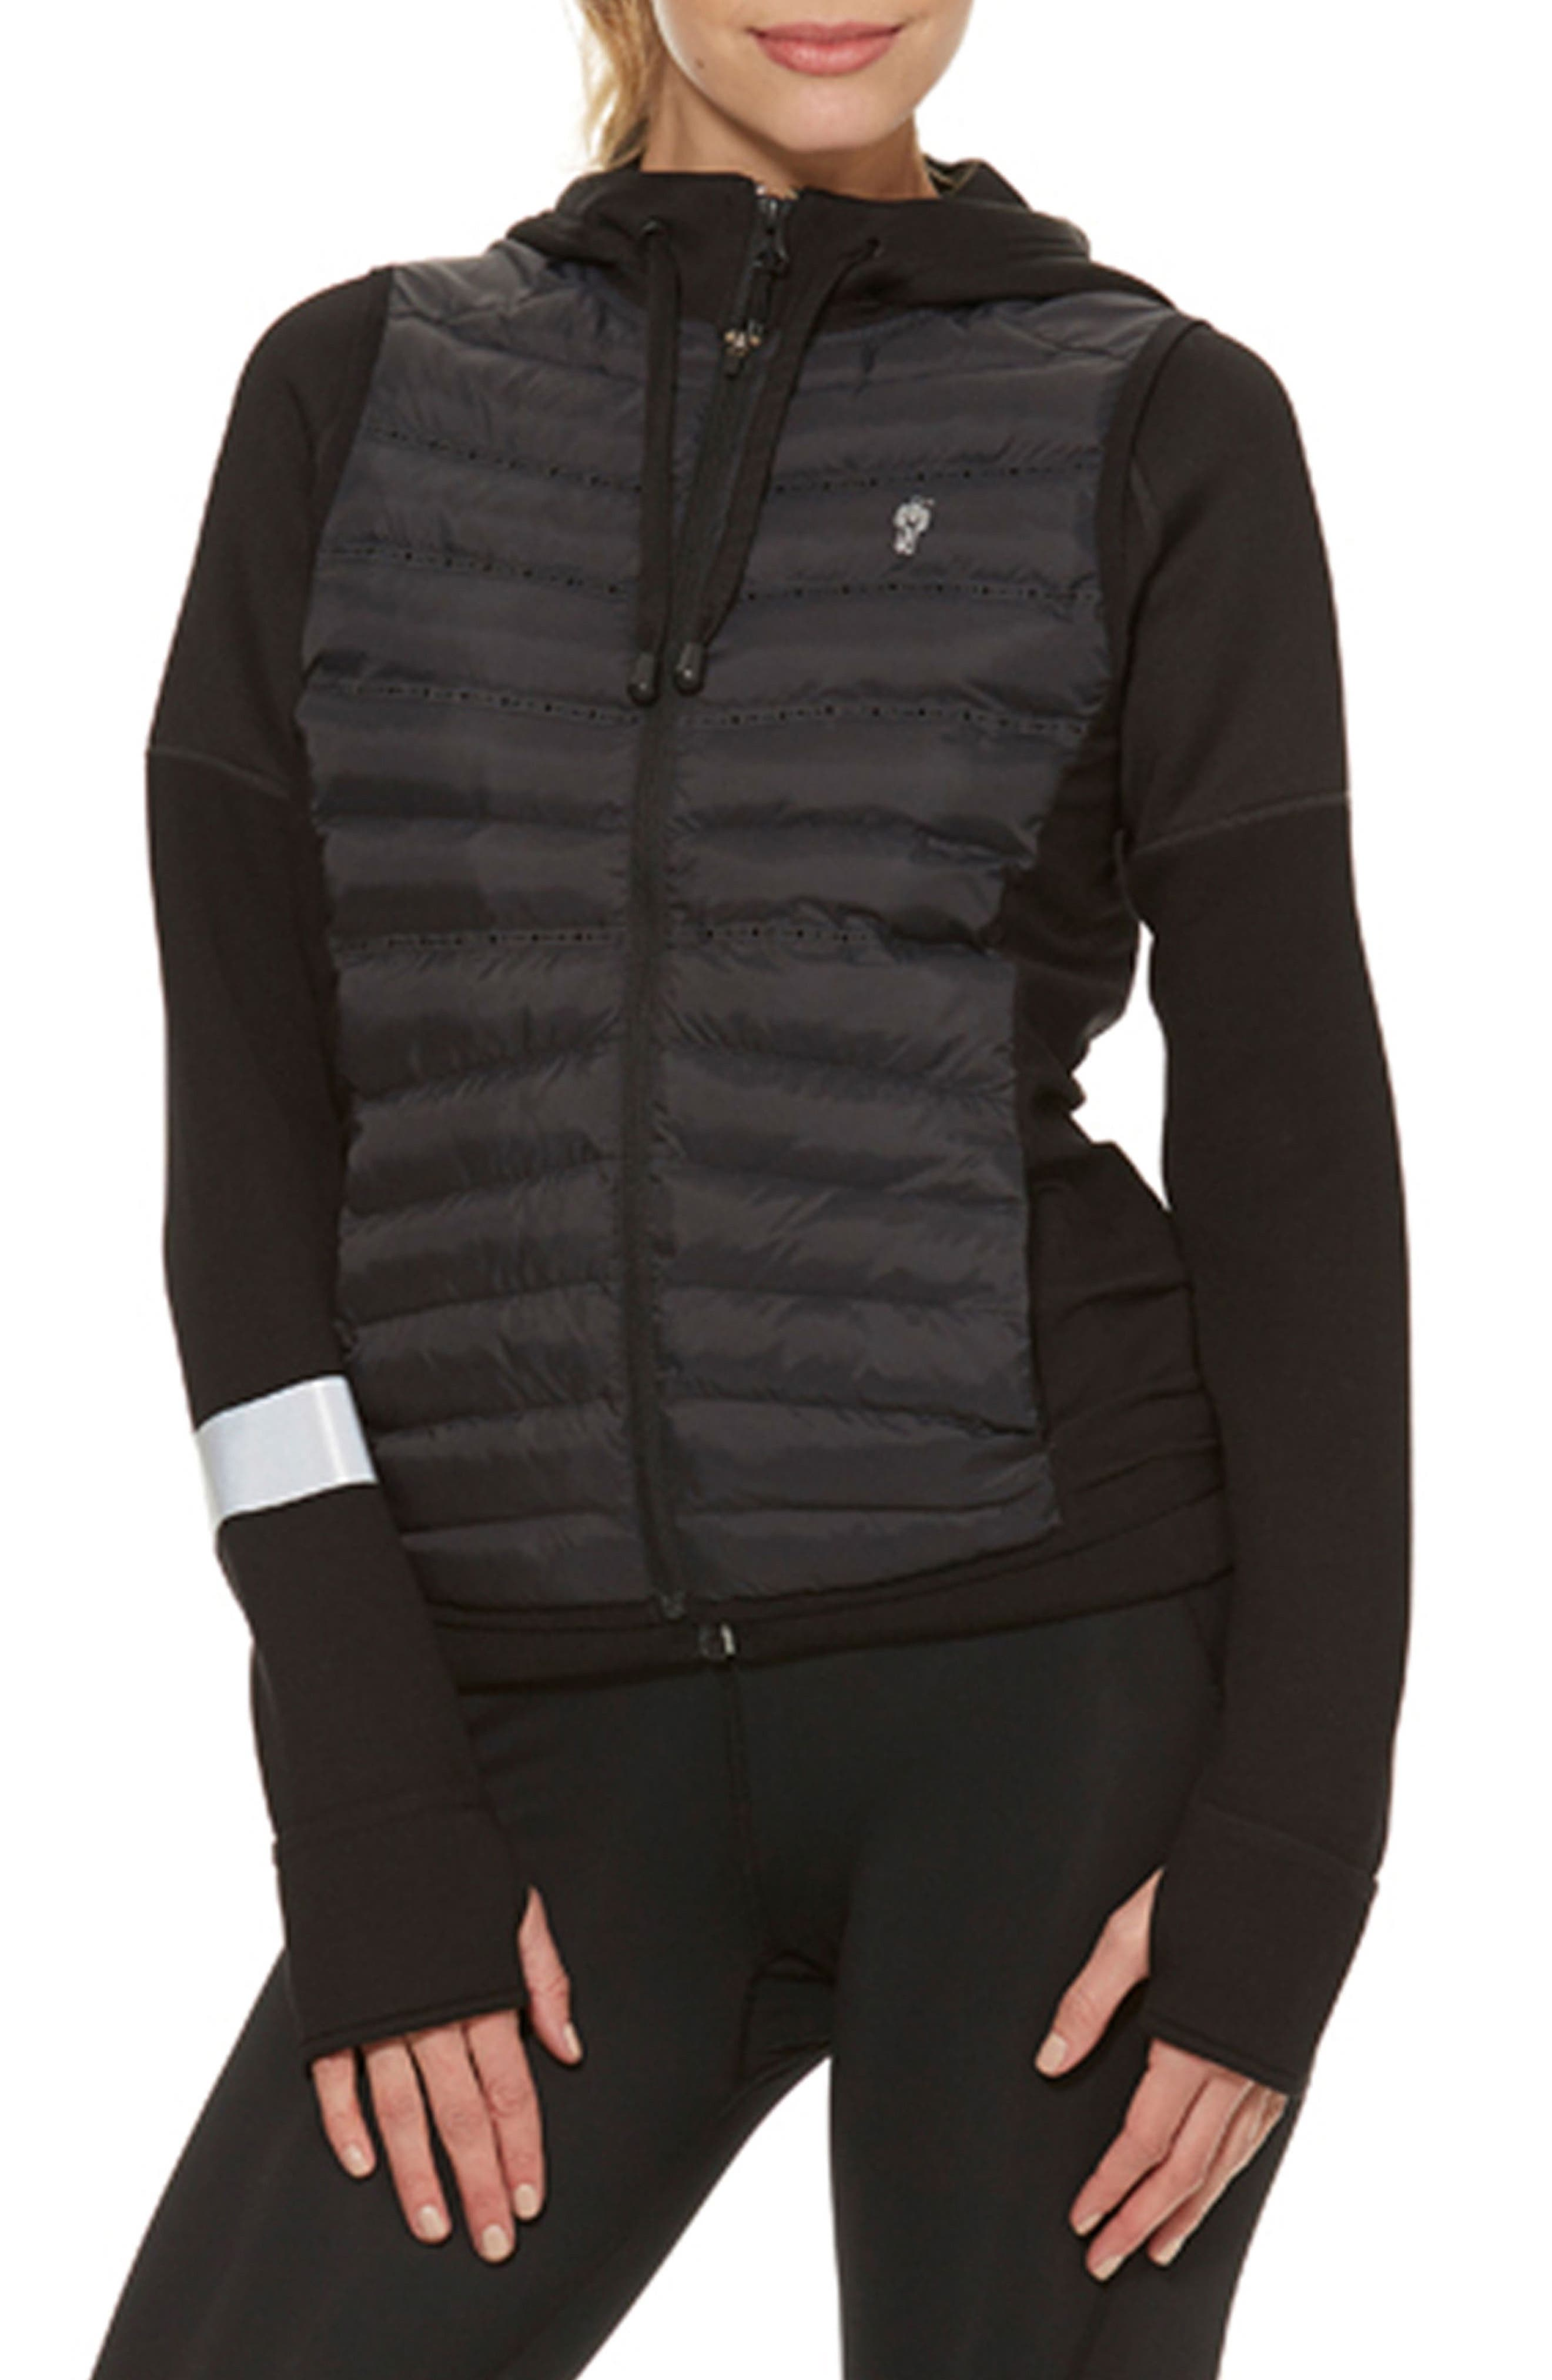 Brecon Beacons Water-Resistant & Windproof Insulated 2-in-1 Jacket,                         Main,                         color, Black